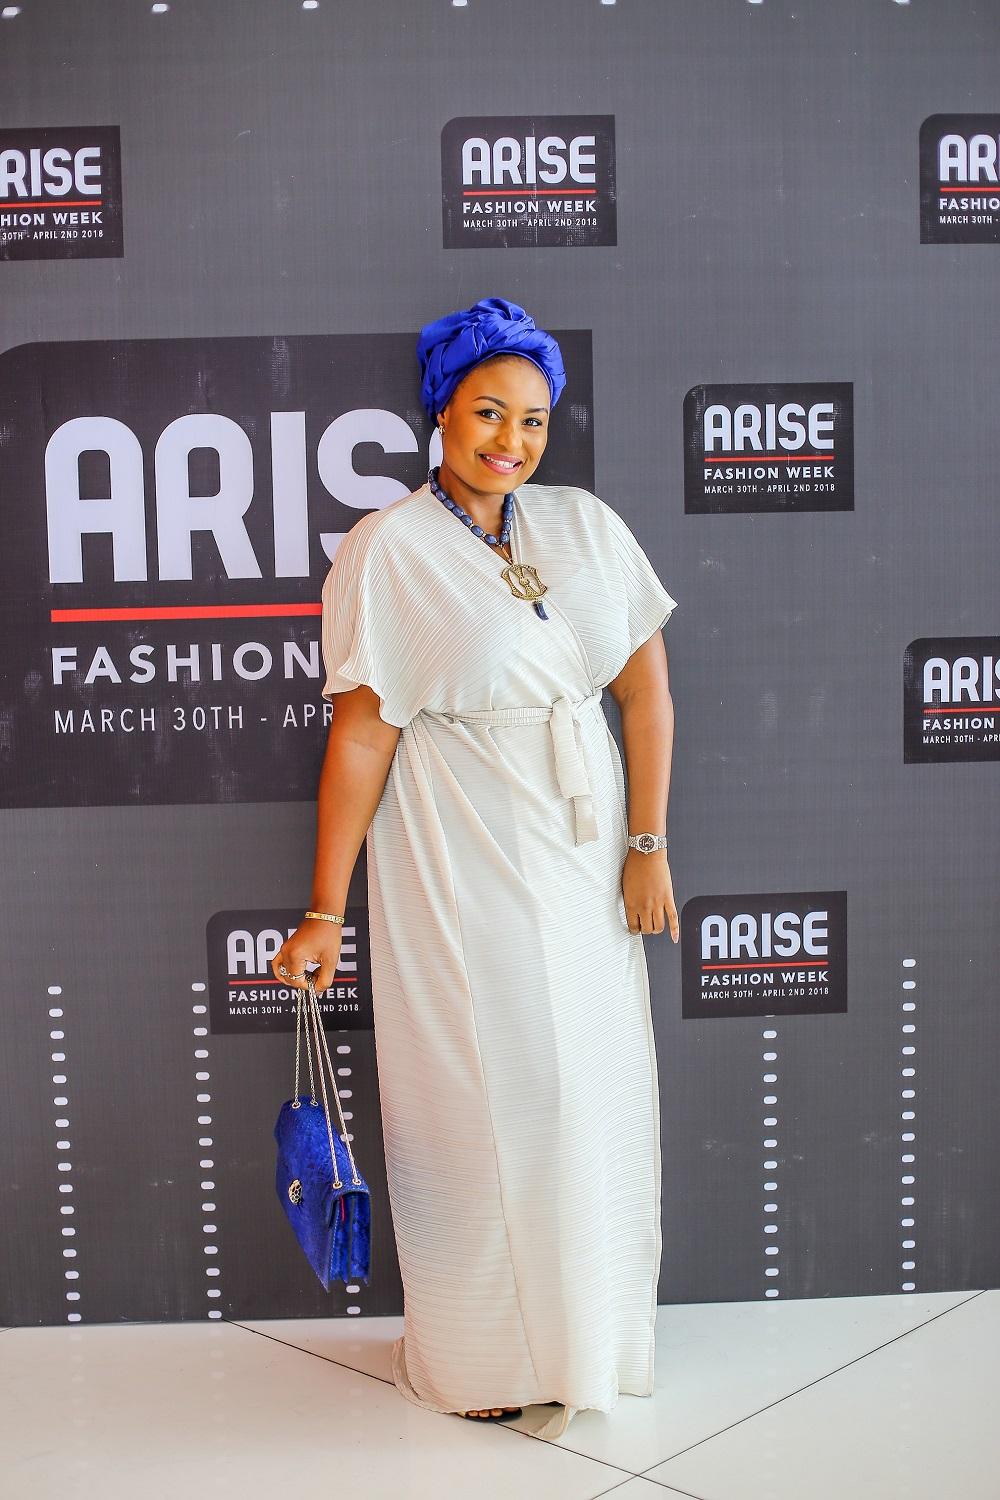 Arise gallery magazine party catalog photo